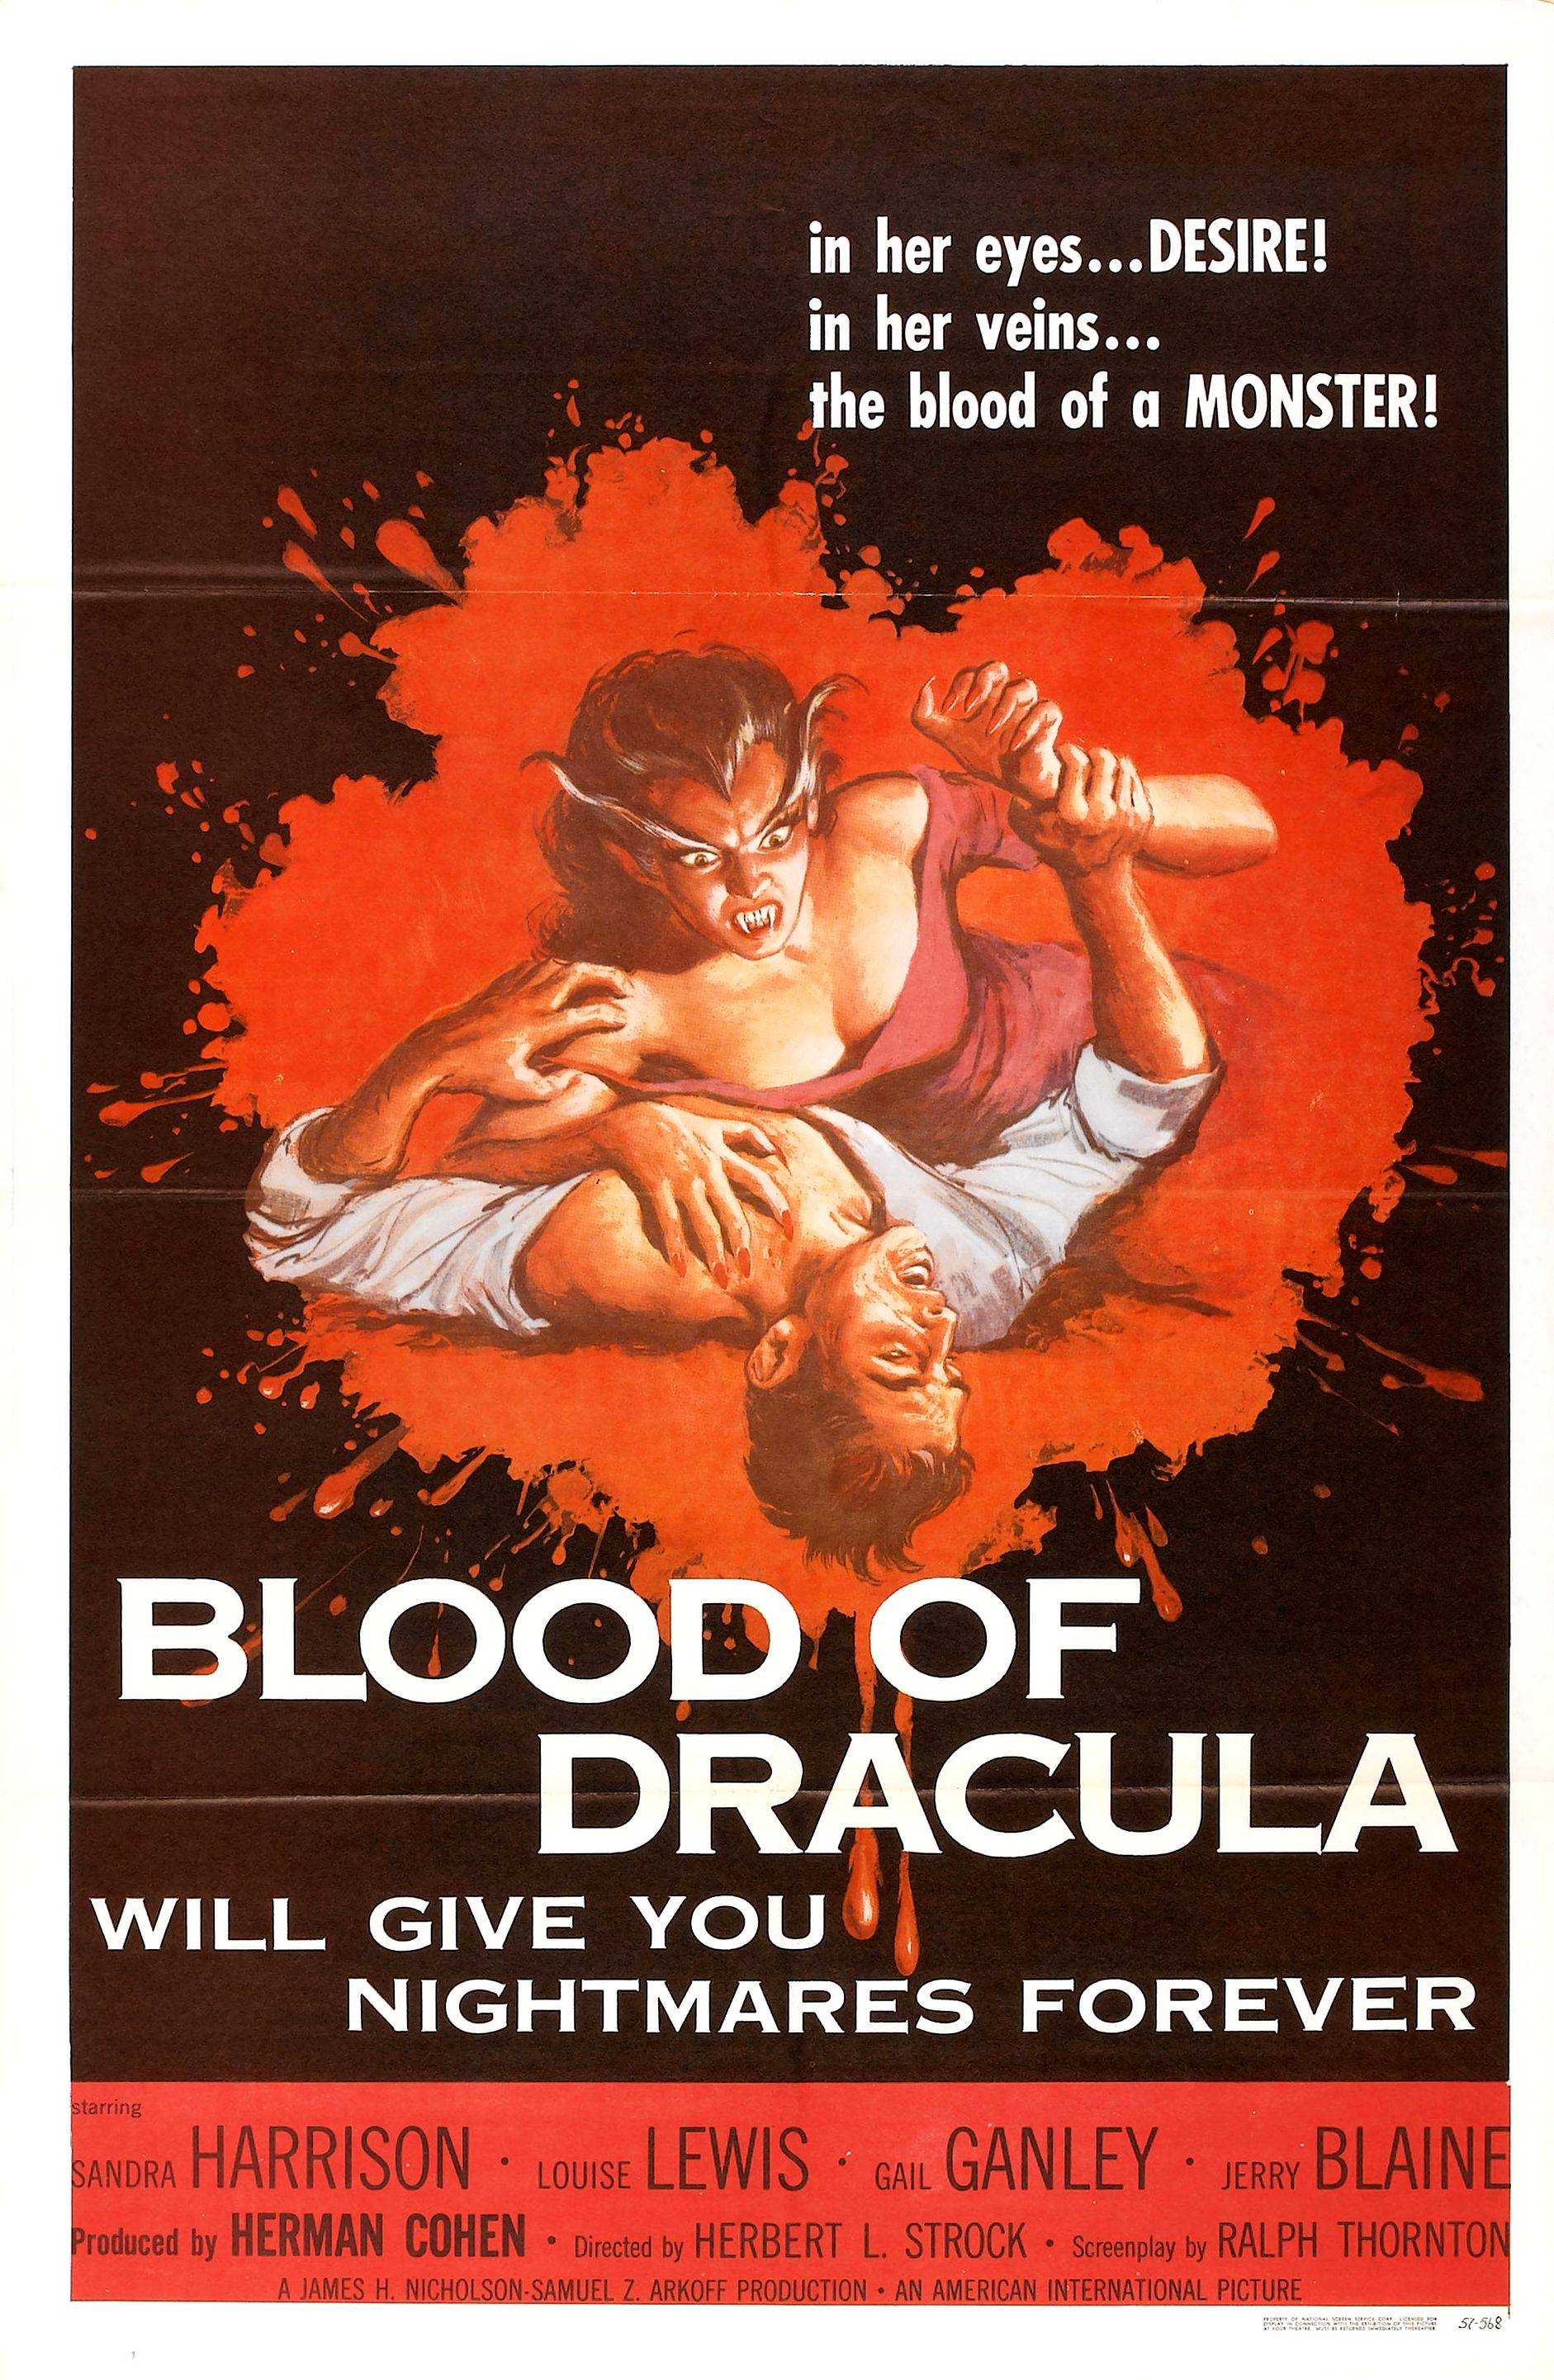 blood-of-dracula-1957-1kite44blood-of-dracula-1957-1blood-of-dracula-1957-14blood-of-dracula-1957-11blood-of-dracula-1957-32